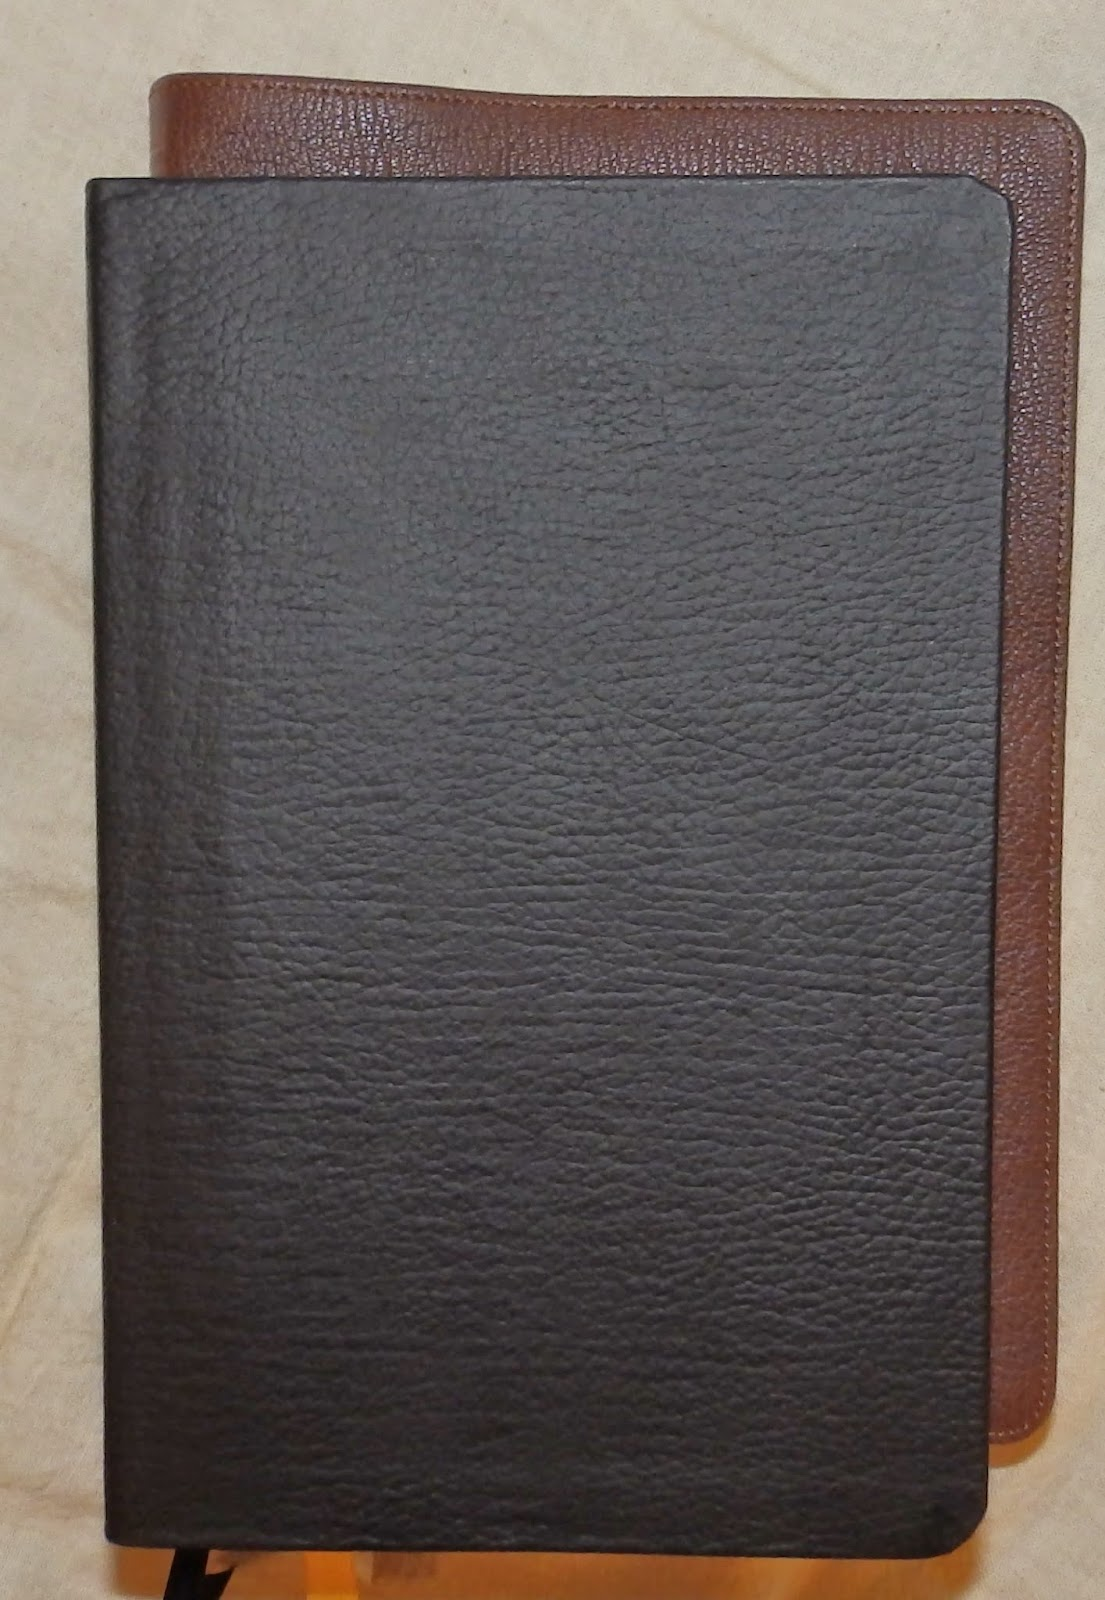 Thomas Nelson black leather (top) with Schuyler brown goatskin